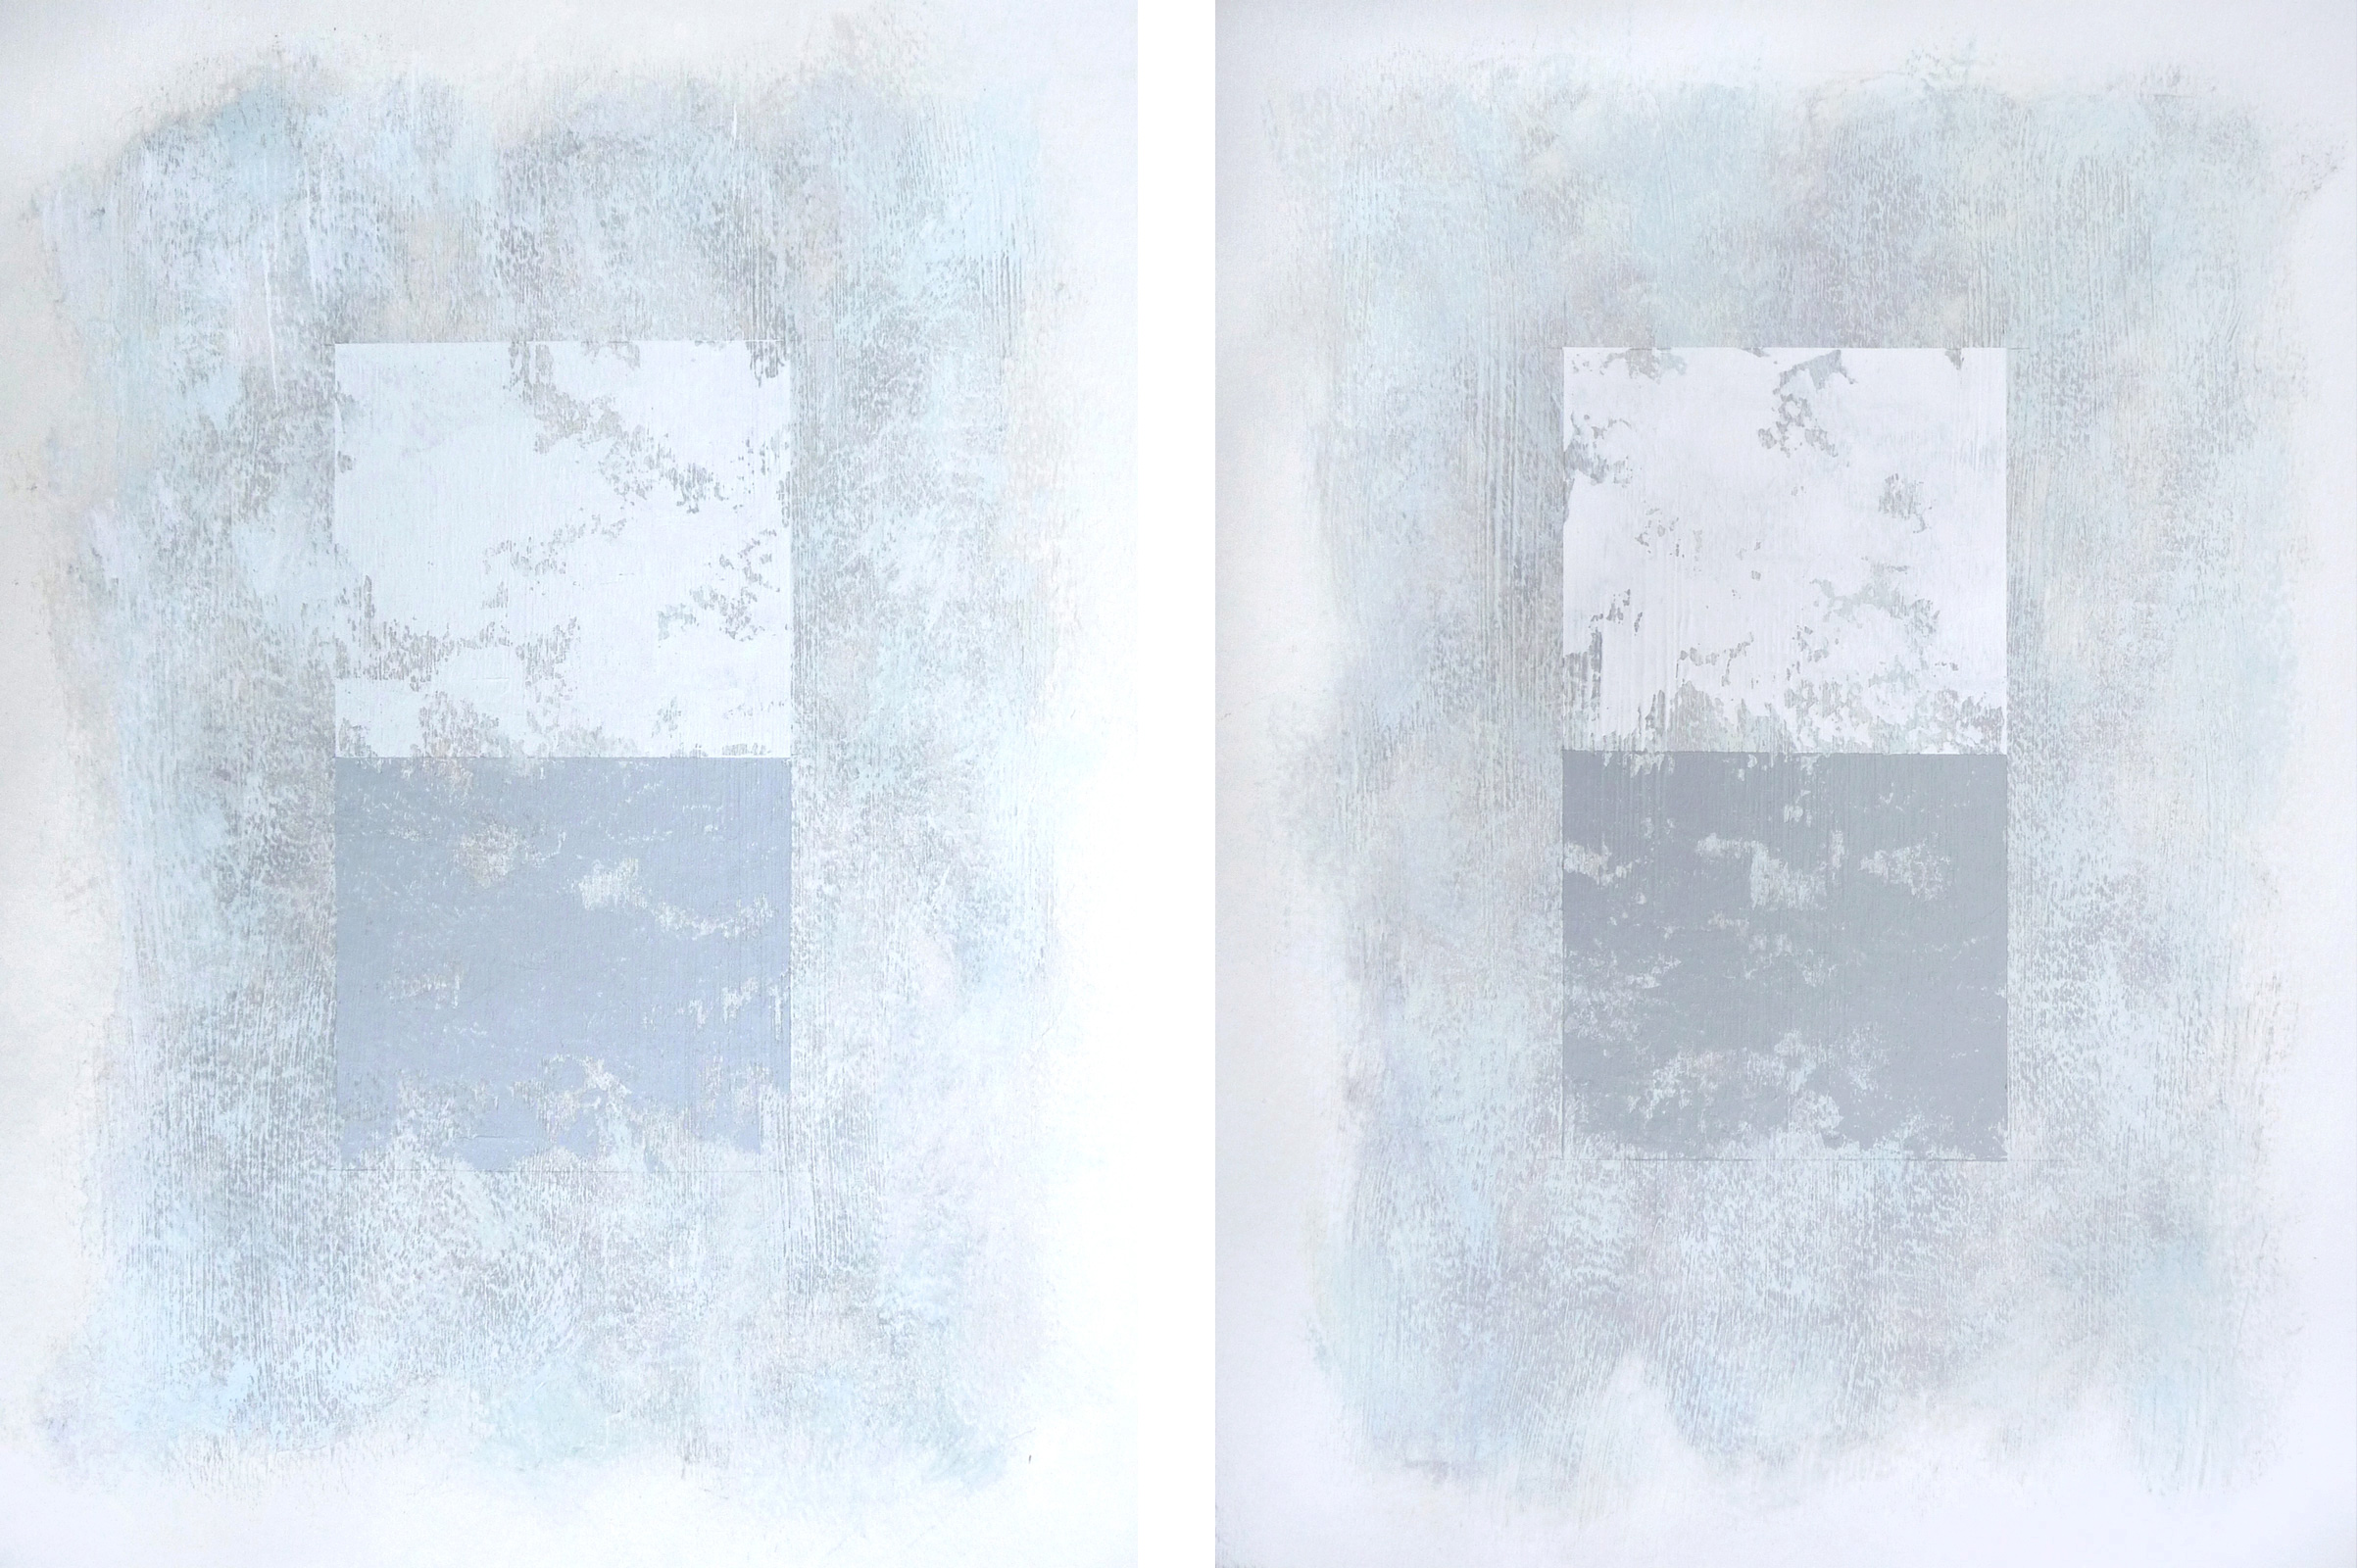 Svinøya in White I   and   II  , 2016. Mixed media on paper. 15 x 11 inches (38.1 x 27.9 cm)